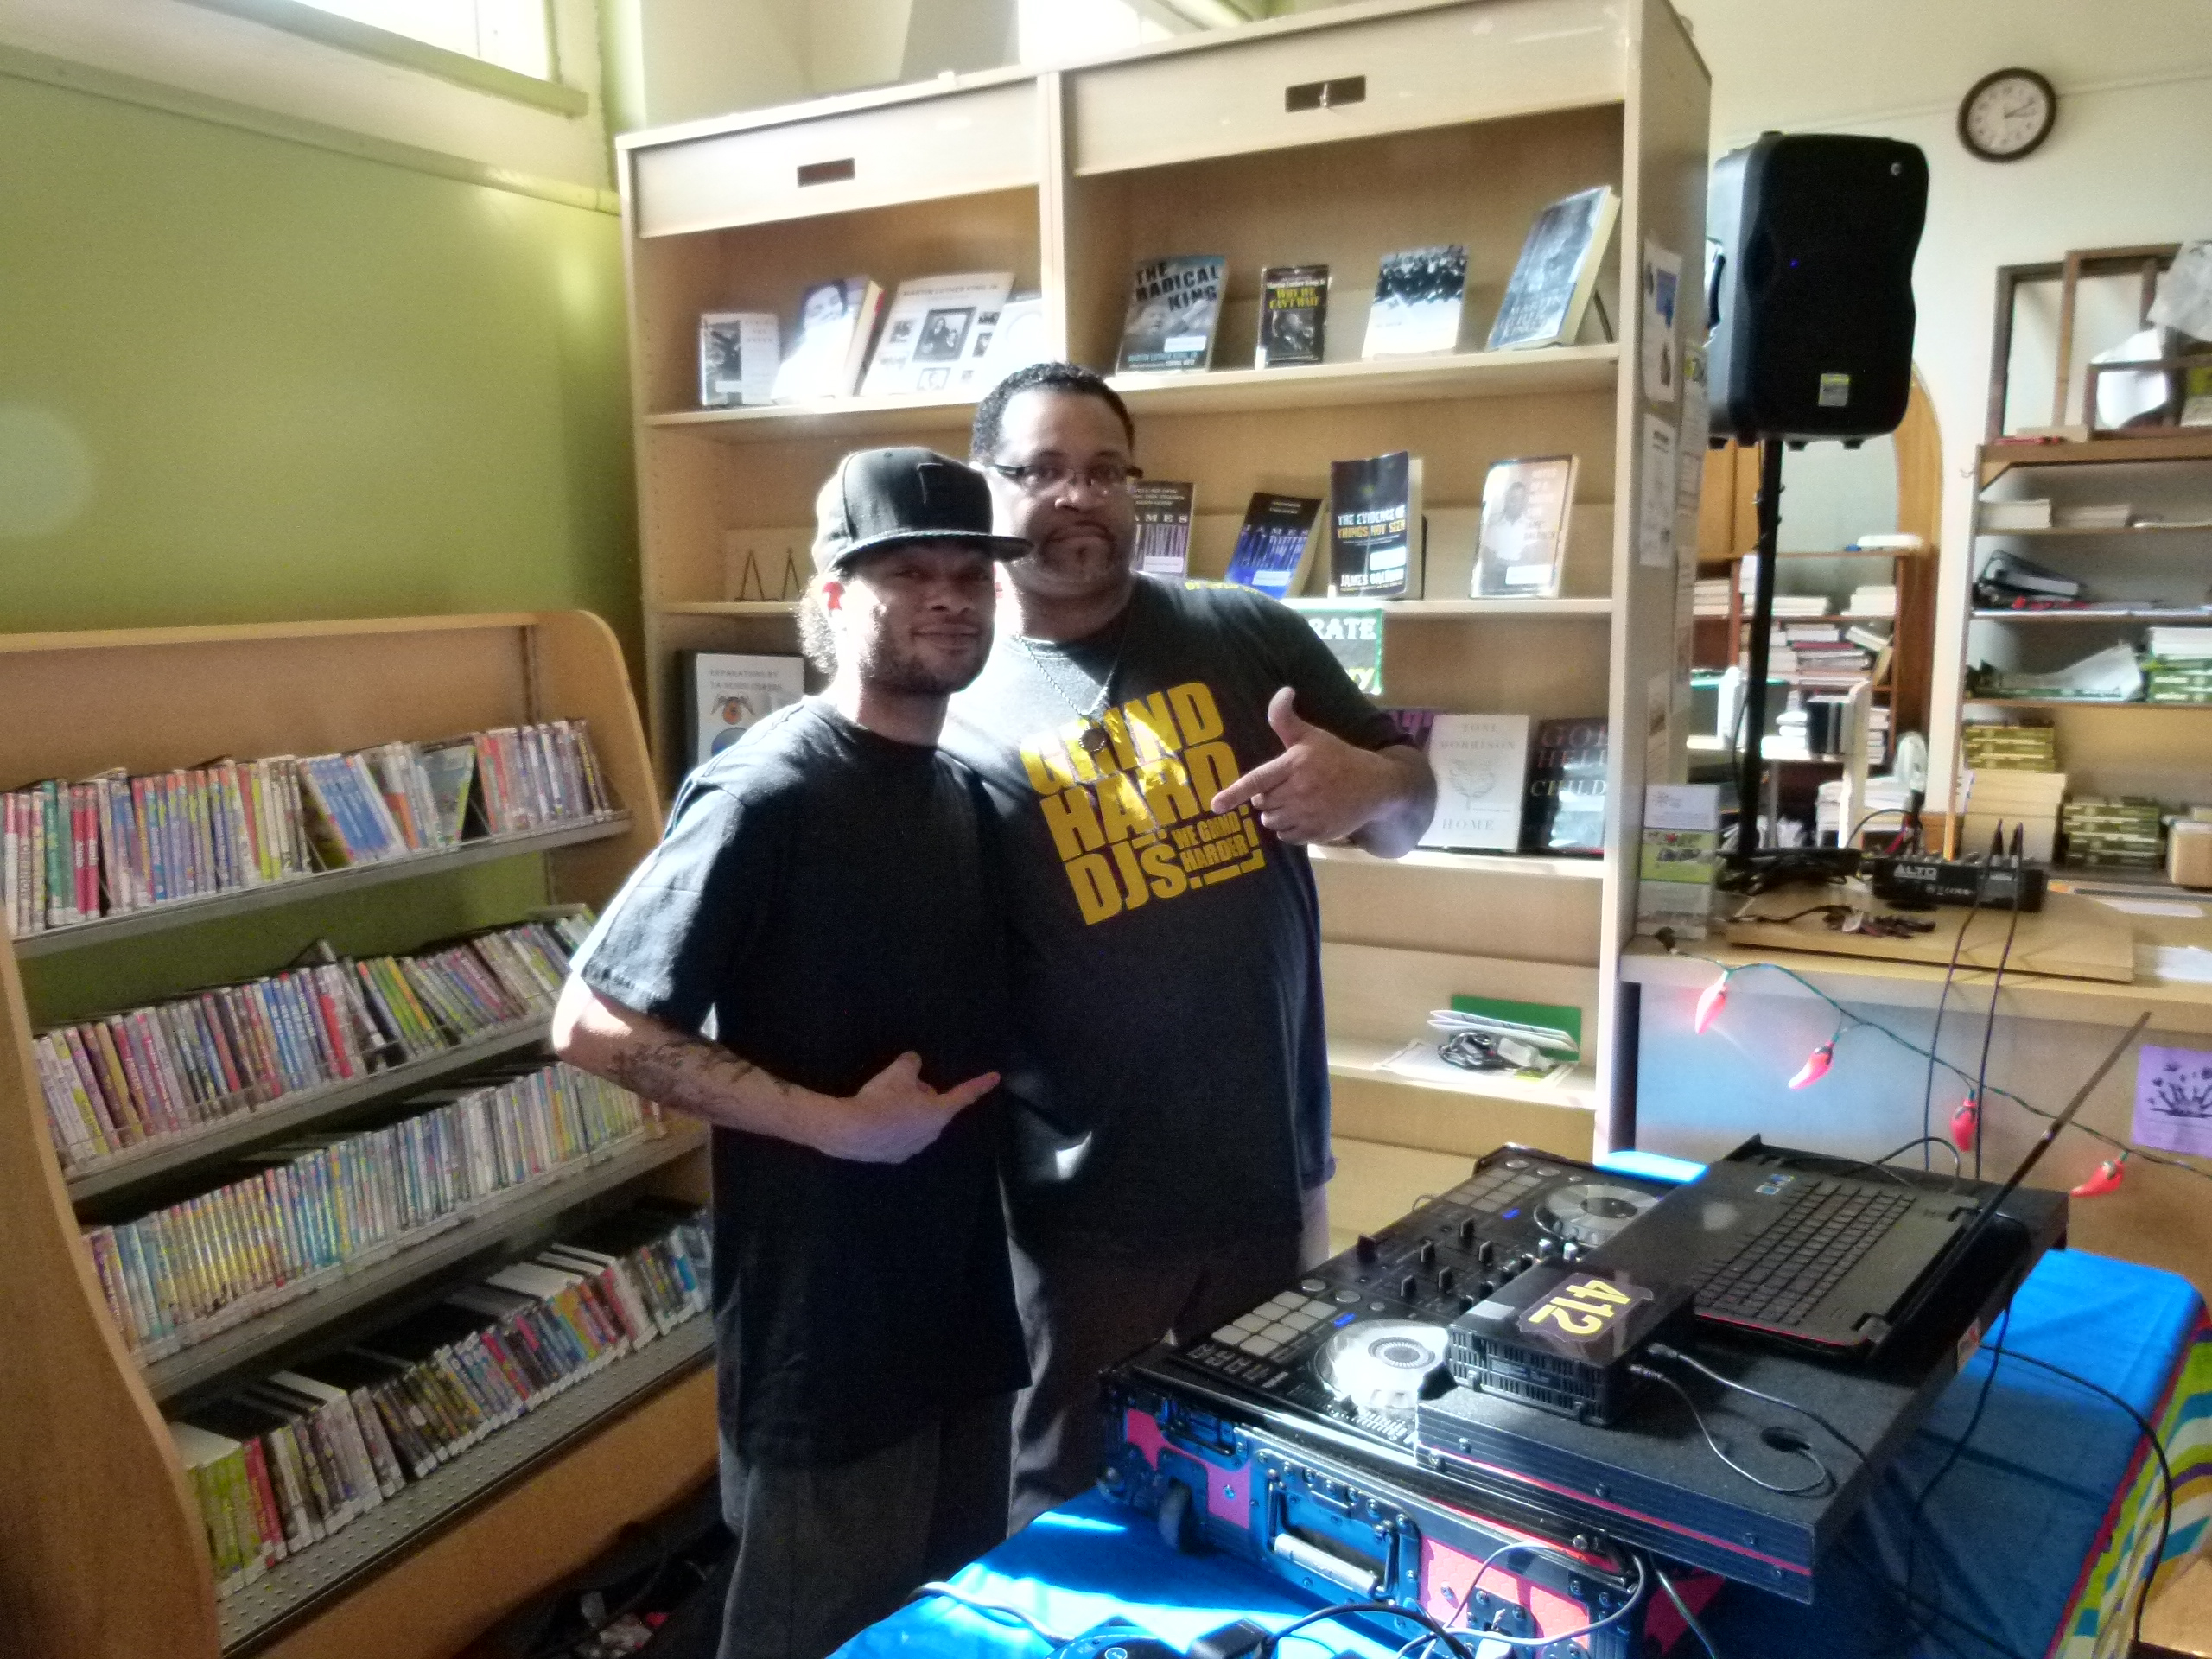 DJ Wyld Chyld (Sean Walker) (l.) and his protege Terance Boddy (r.) create the music mix for the event.